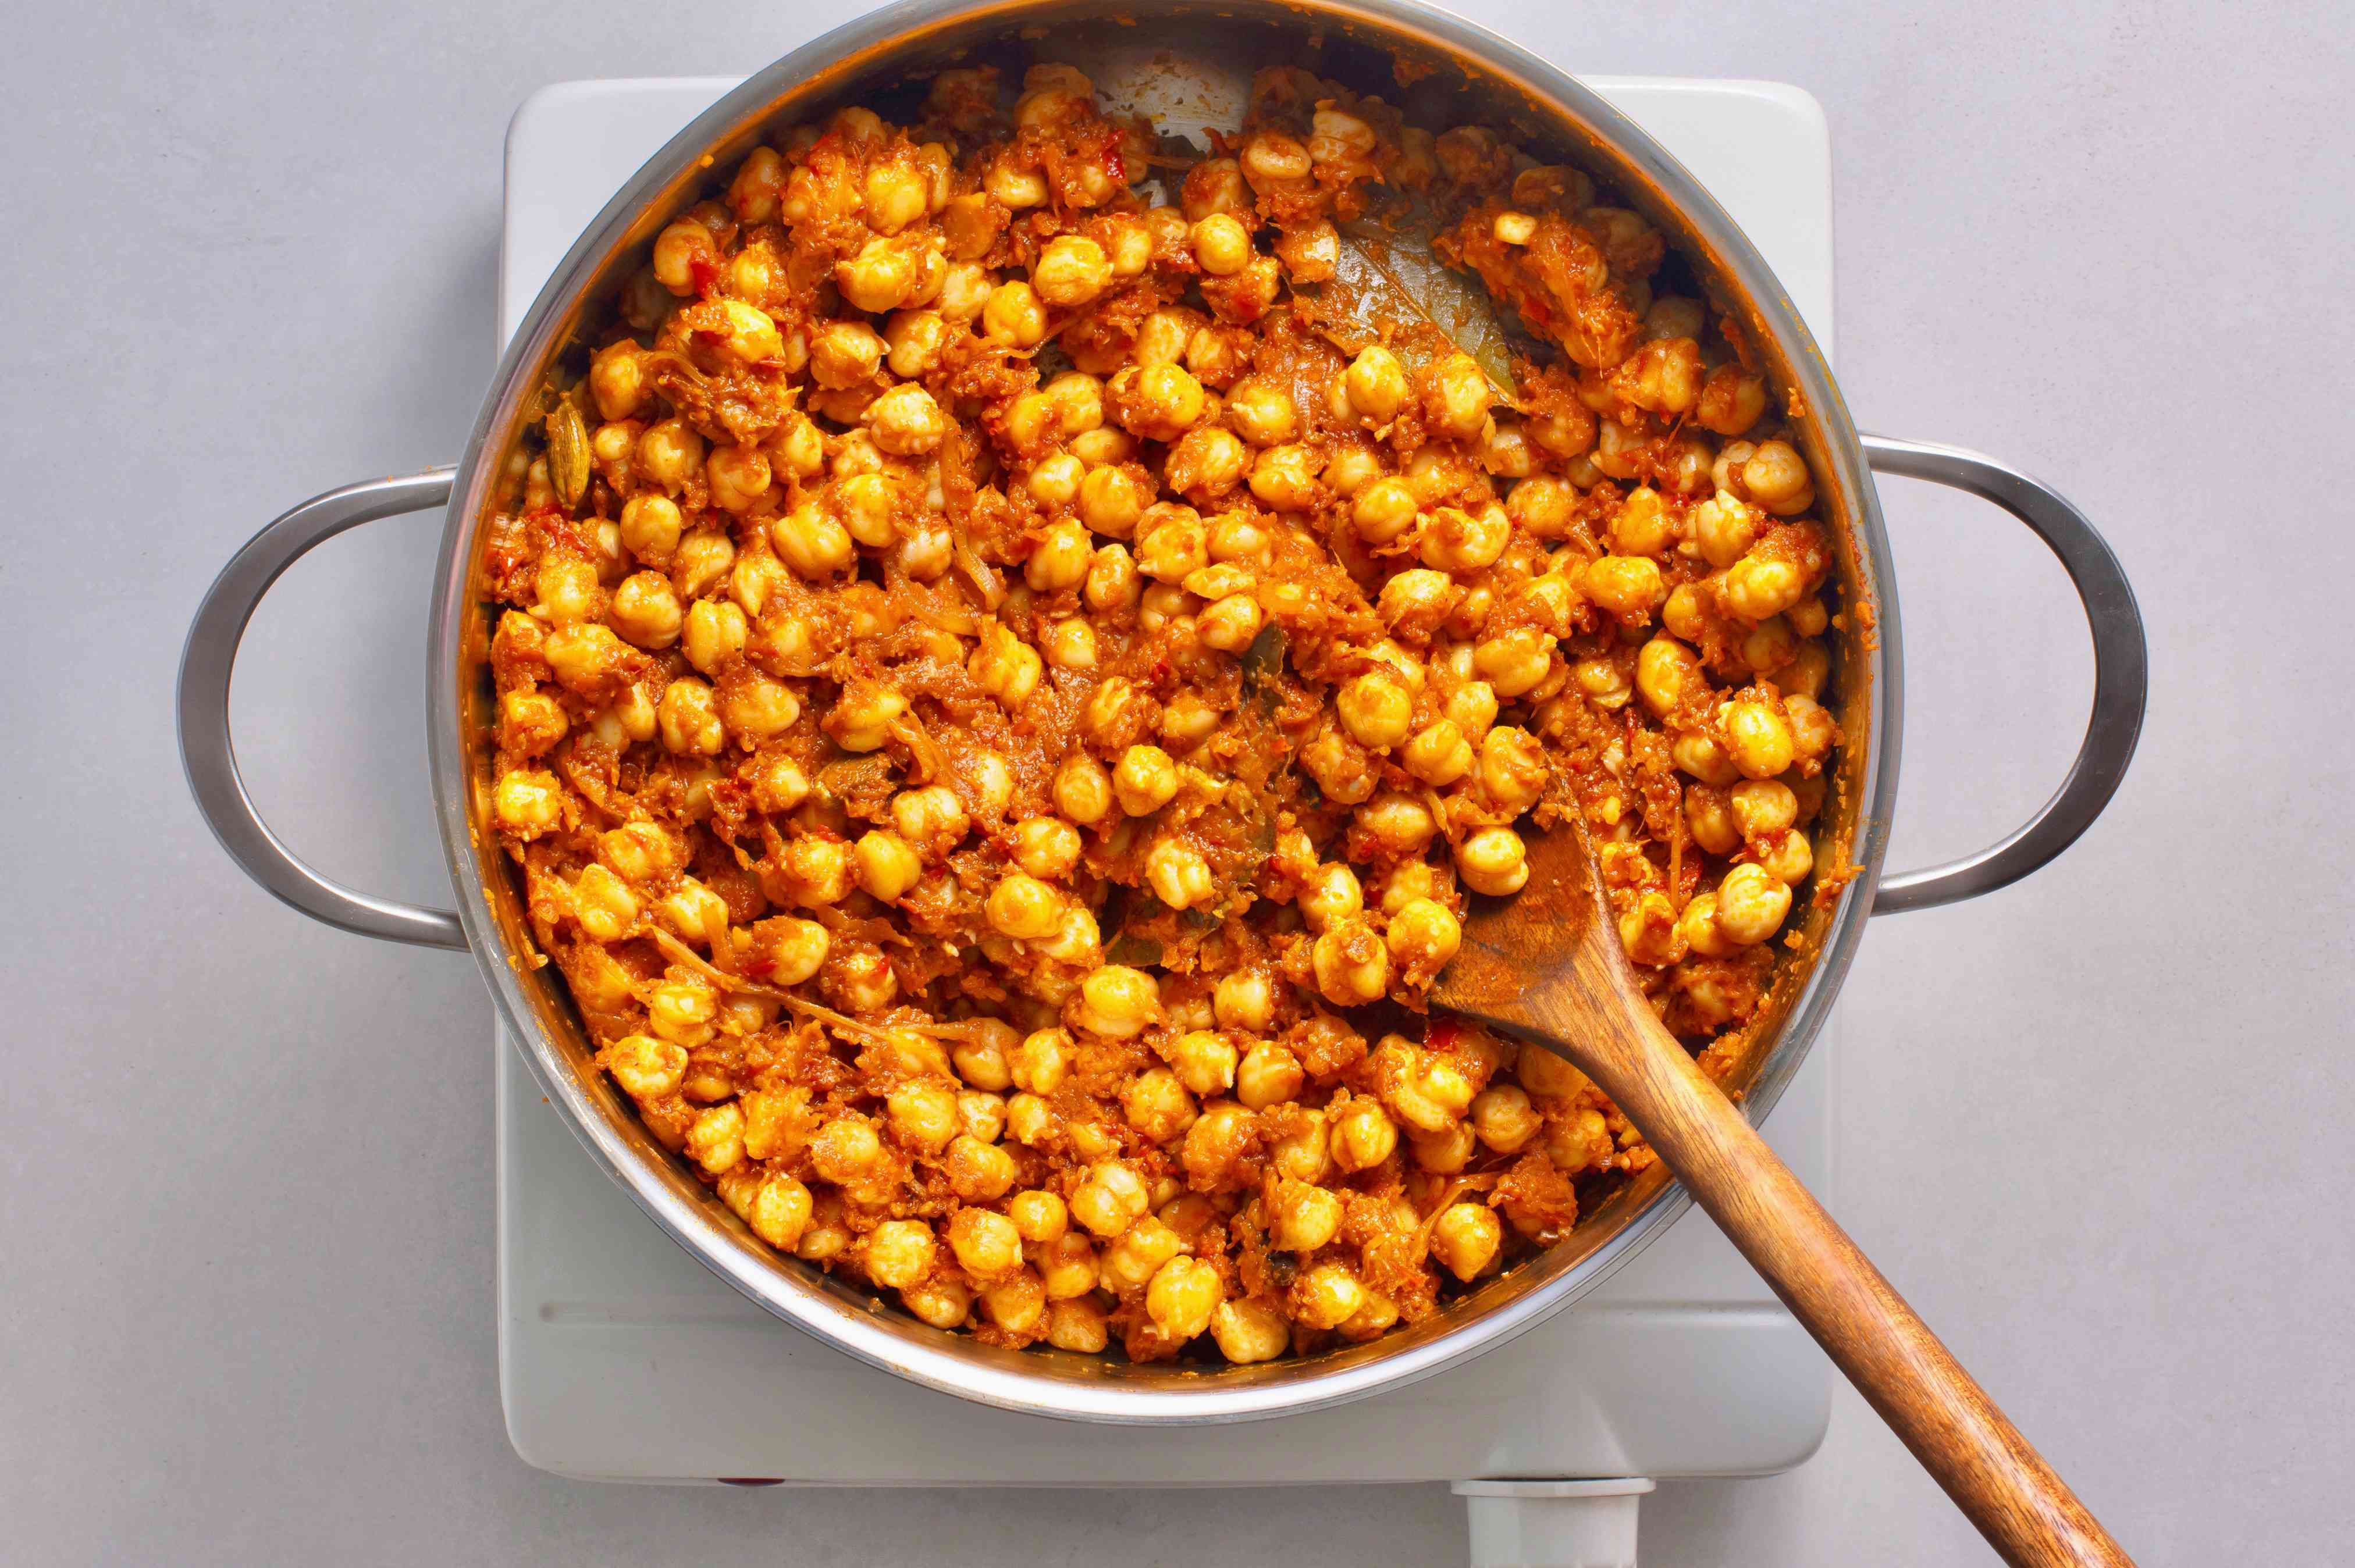 Chickpeas added to masala in the pot